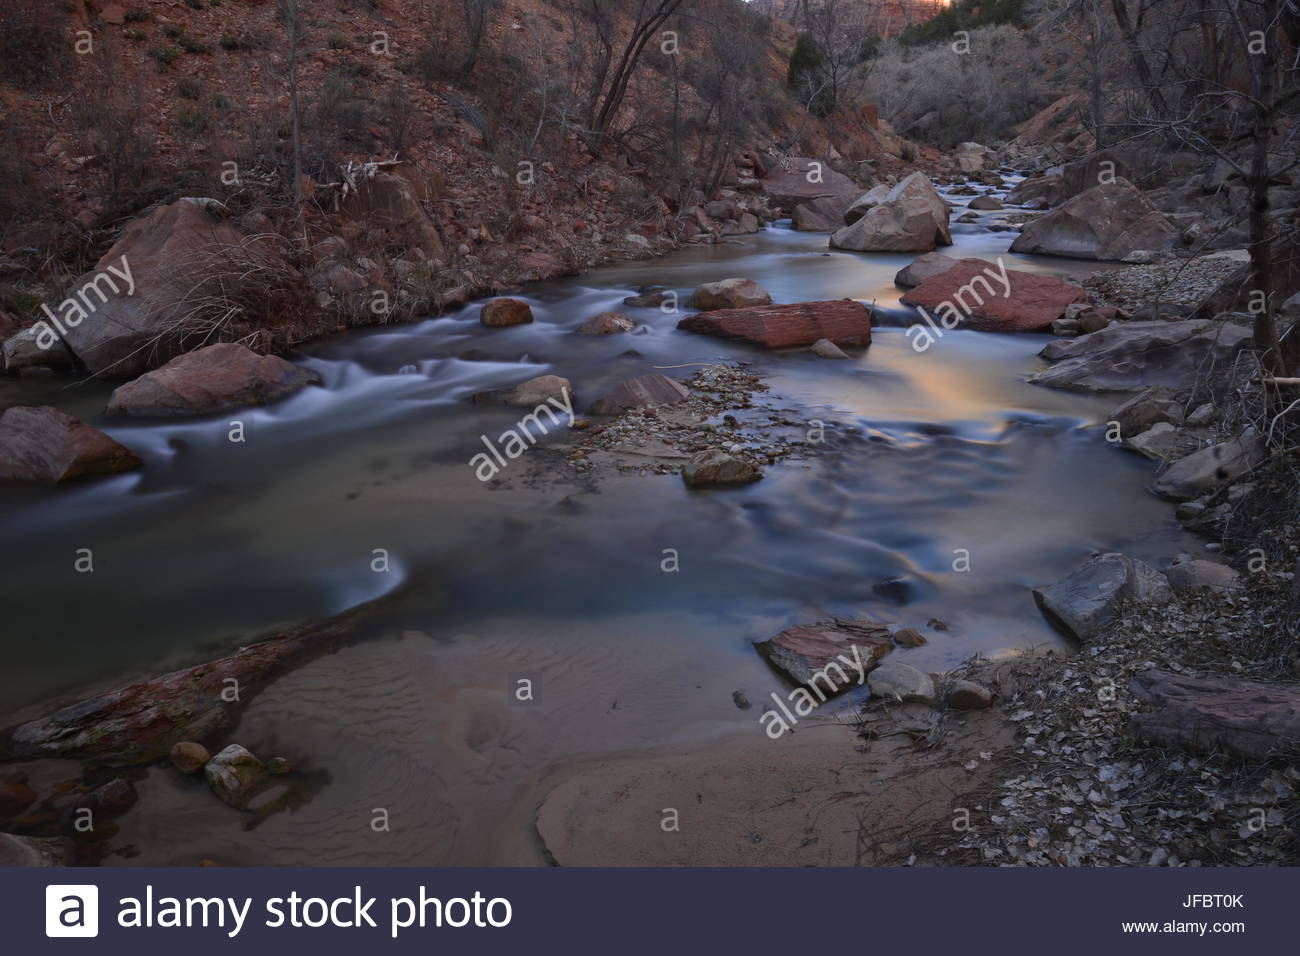 The Virgin River flowing through Zion National Park. - Stock Image